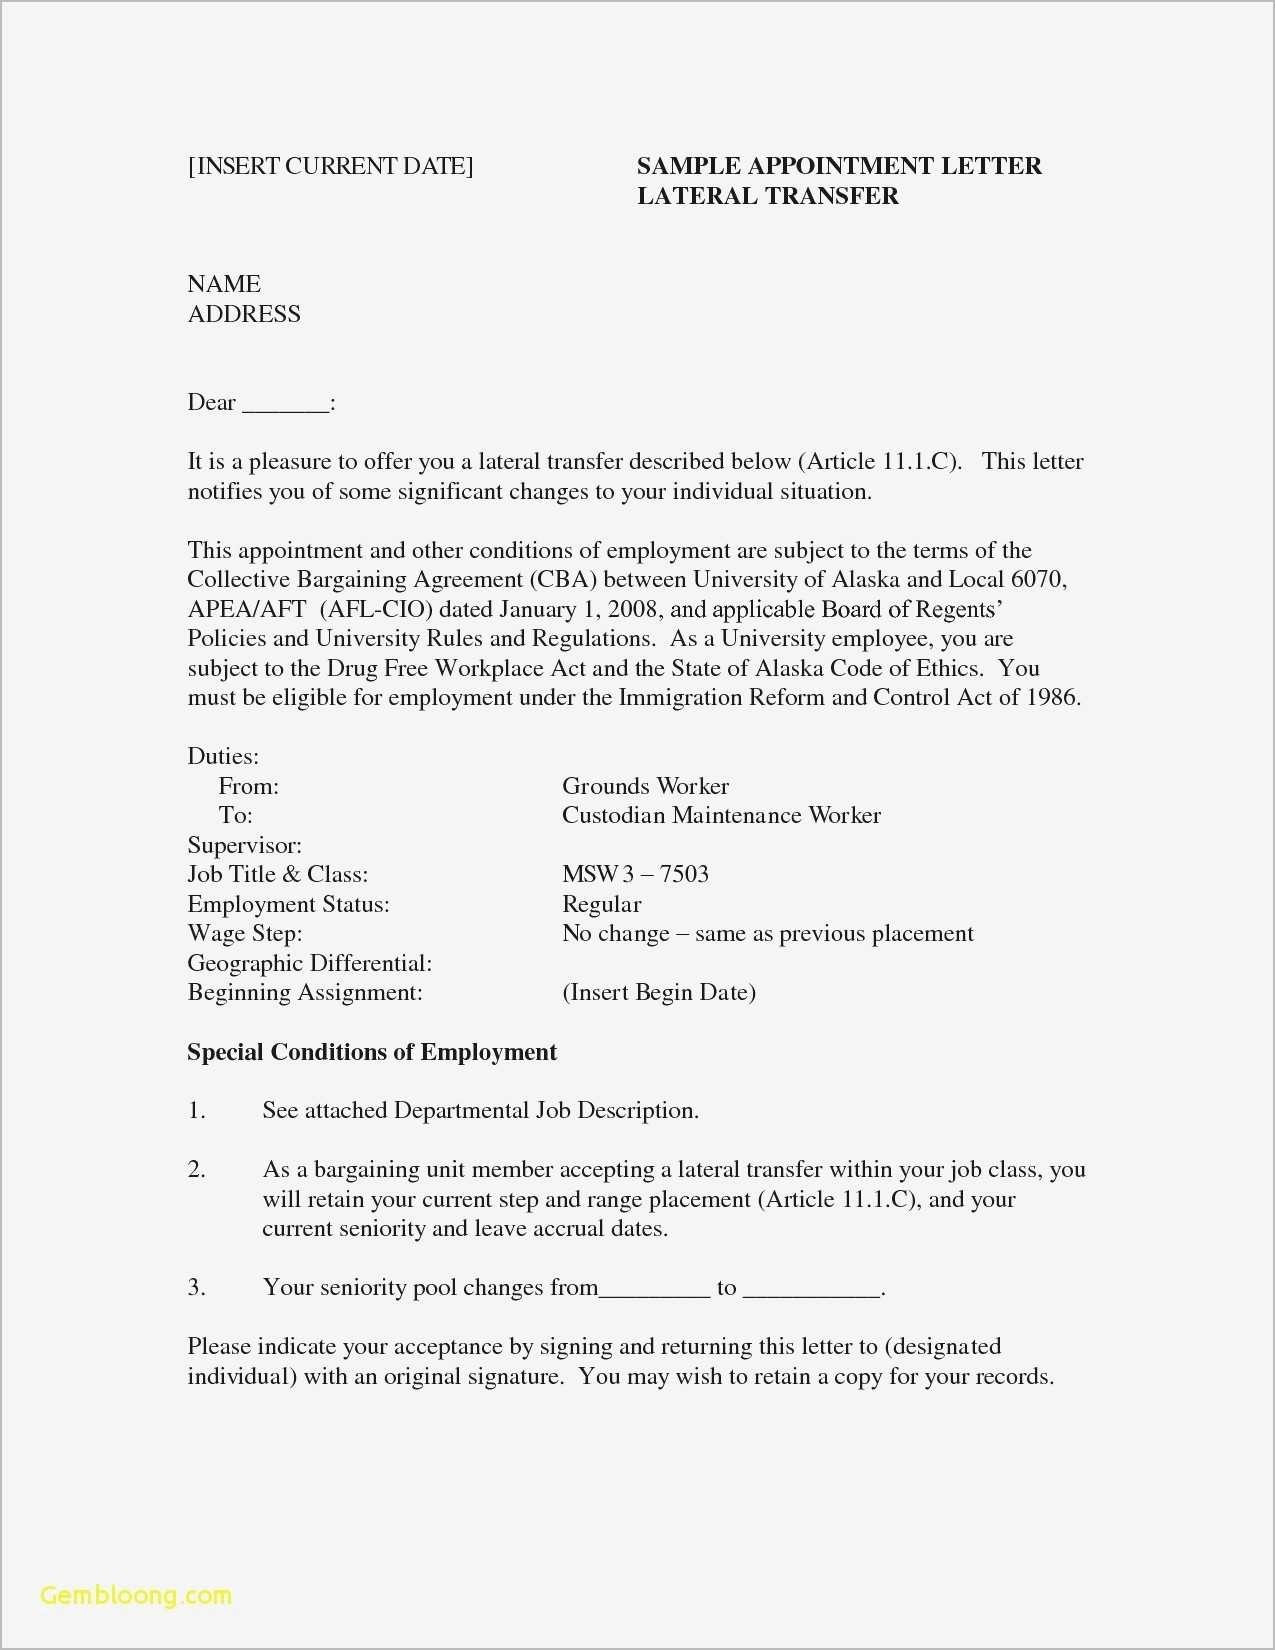 Clerical Work Resume - Clerical Resume Fresh Data Entry Job Description for Resume Lovely